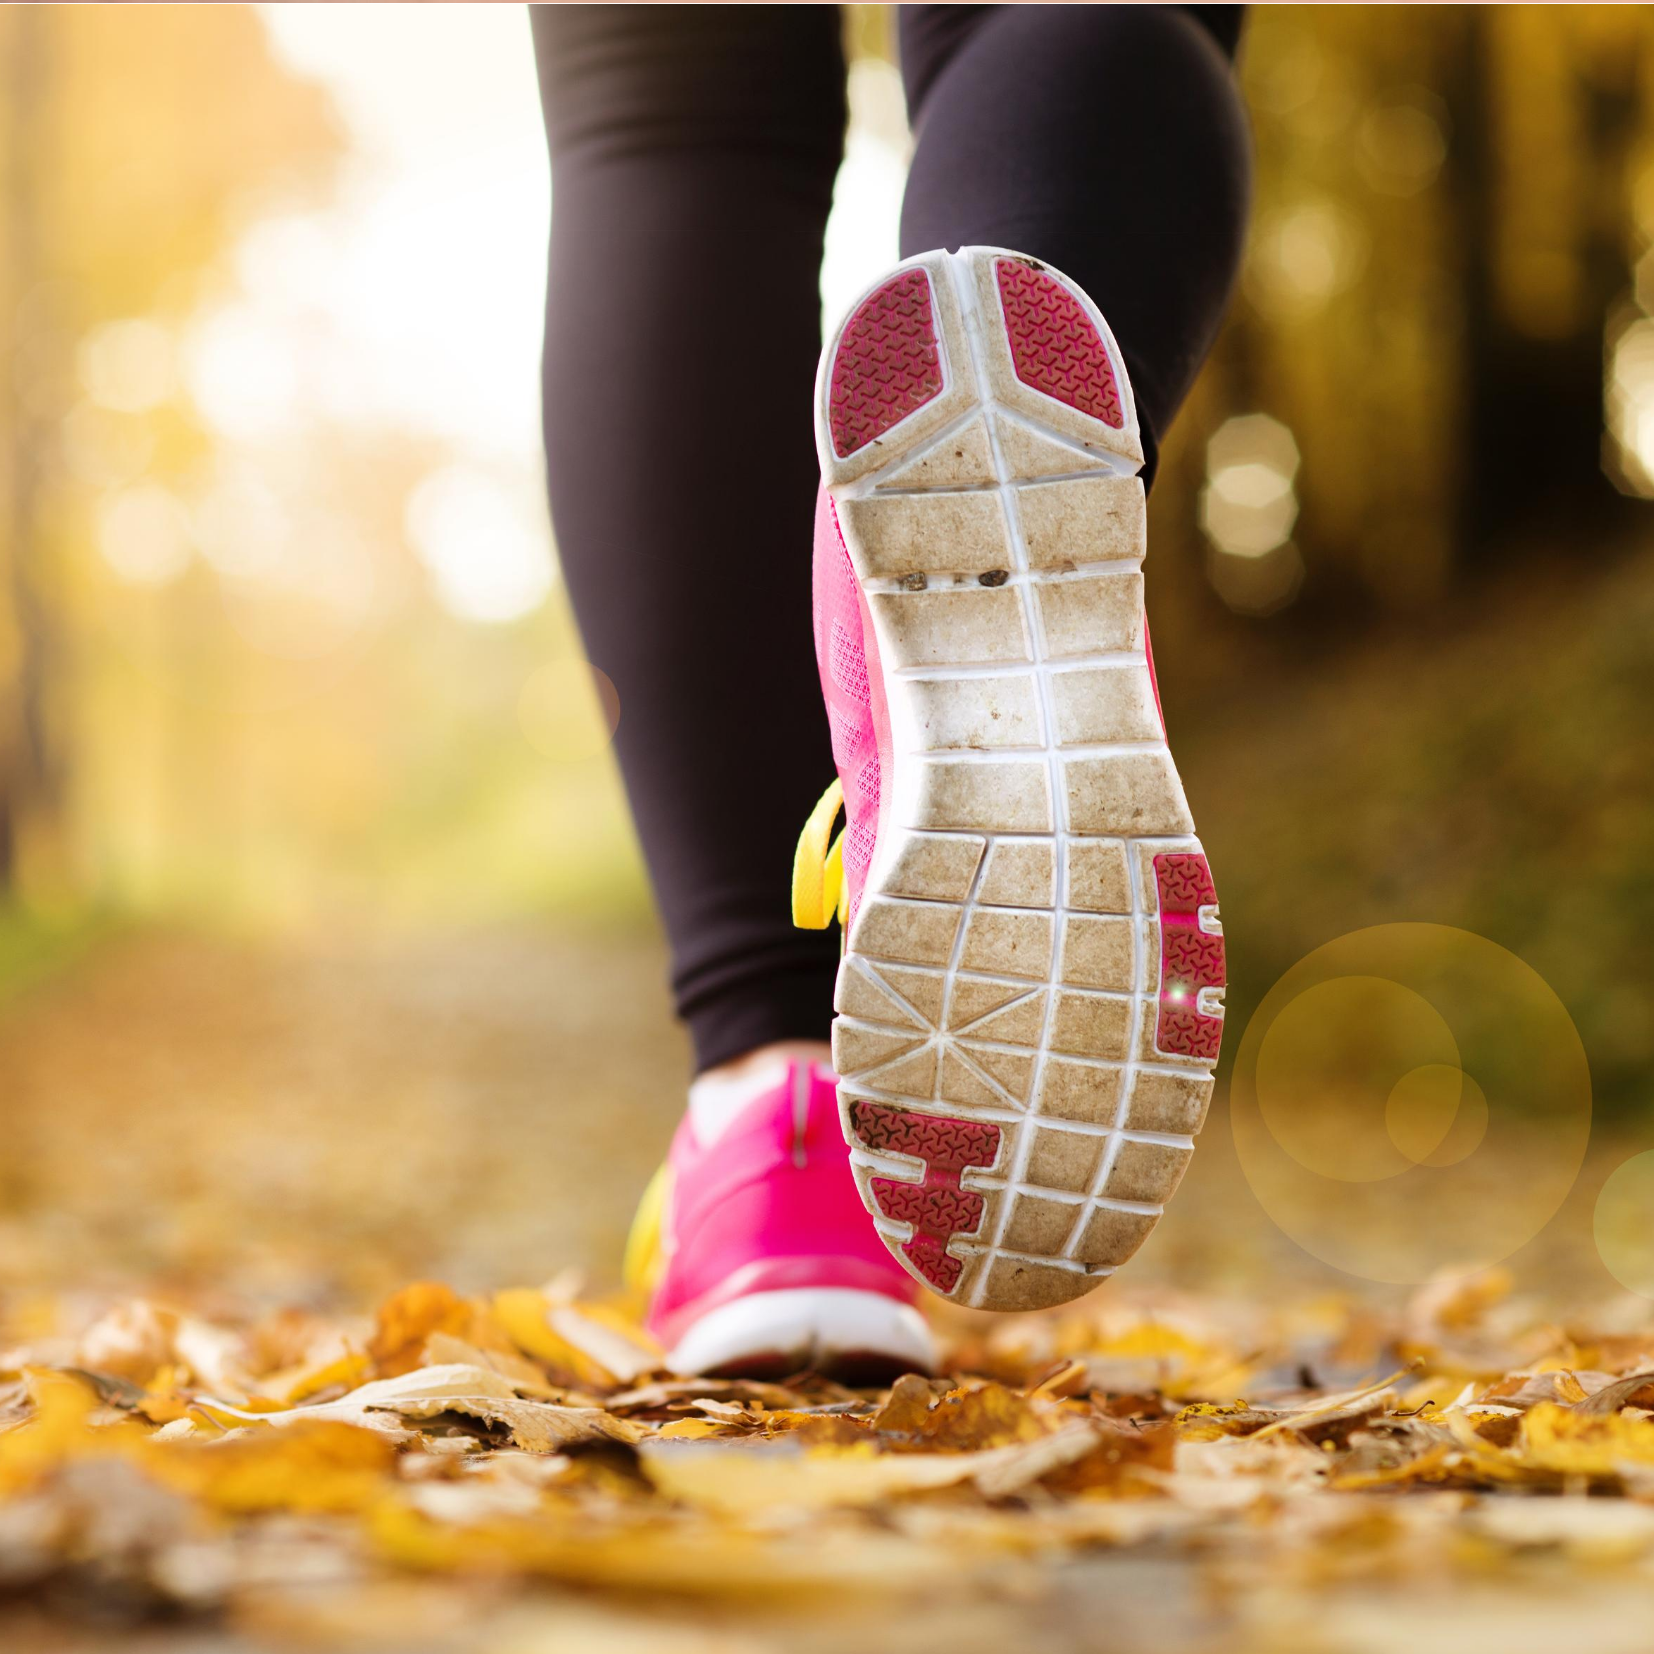 Runner pink sneakers on path with leaves depicting Sports Nutrition